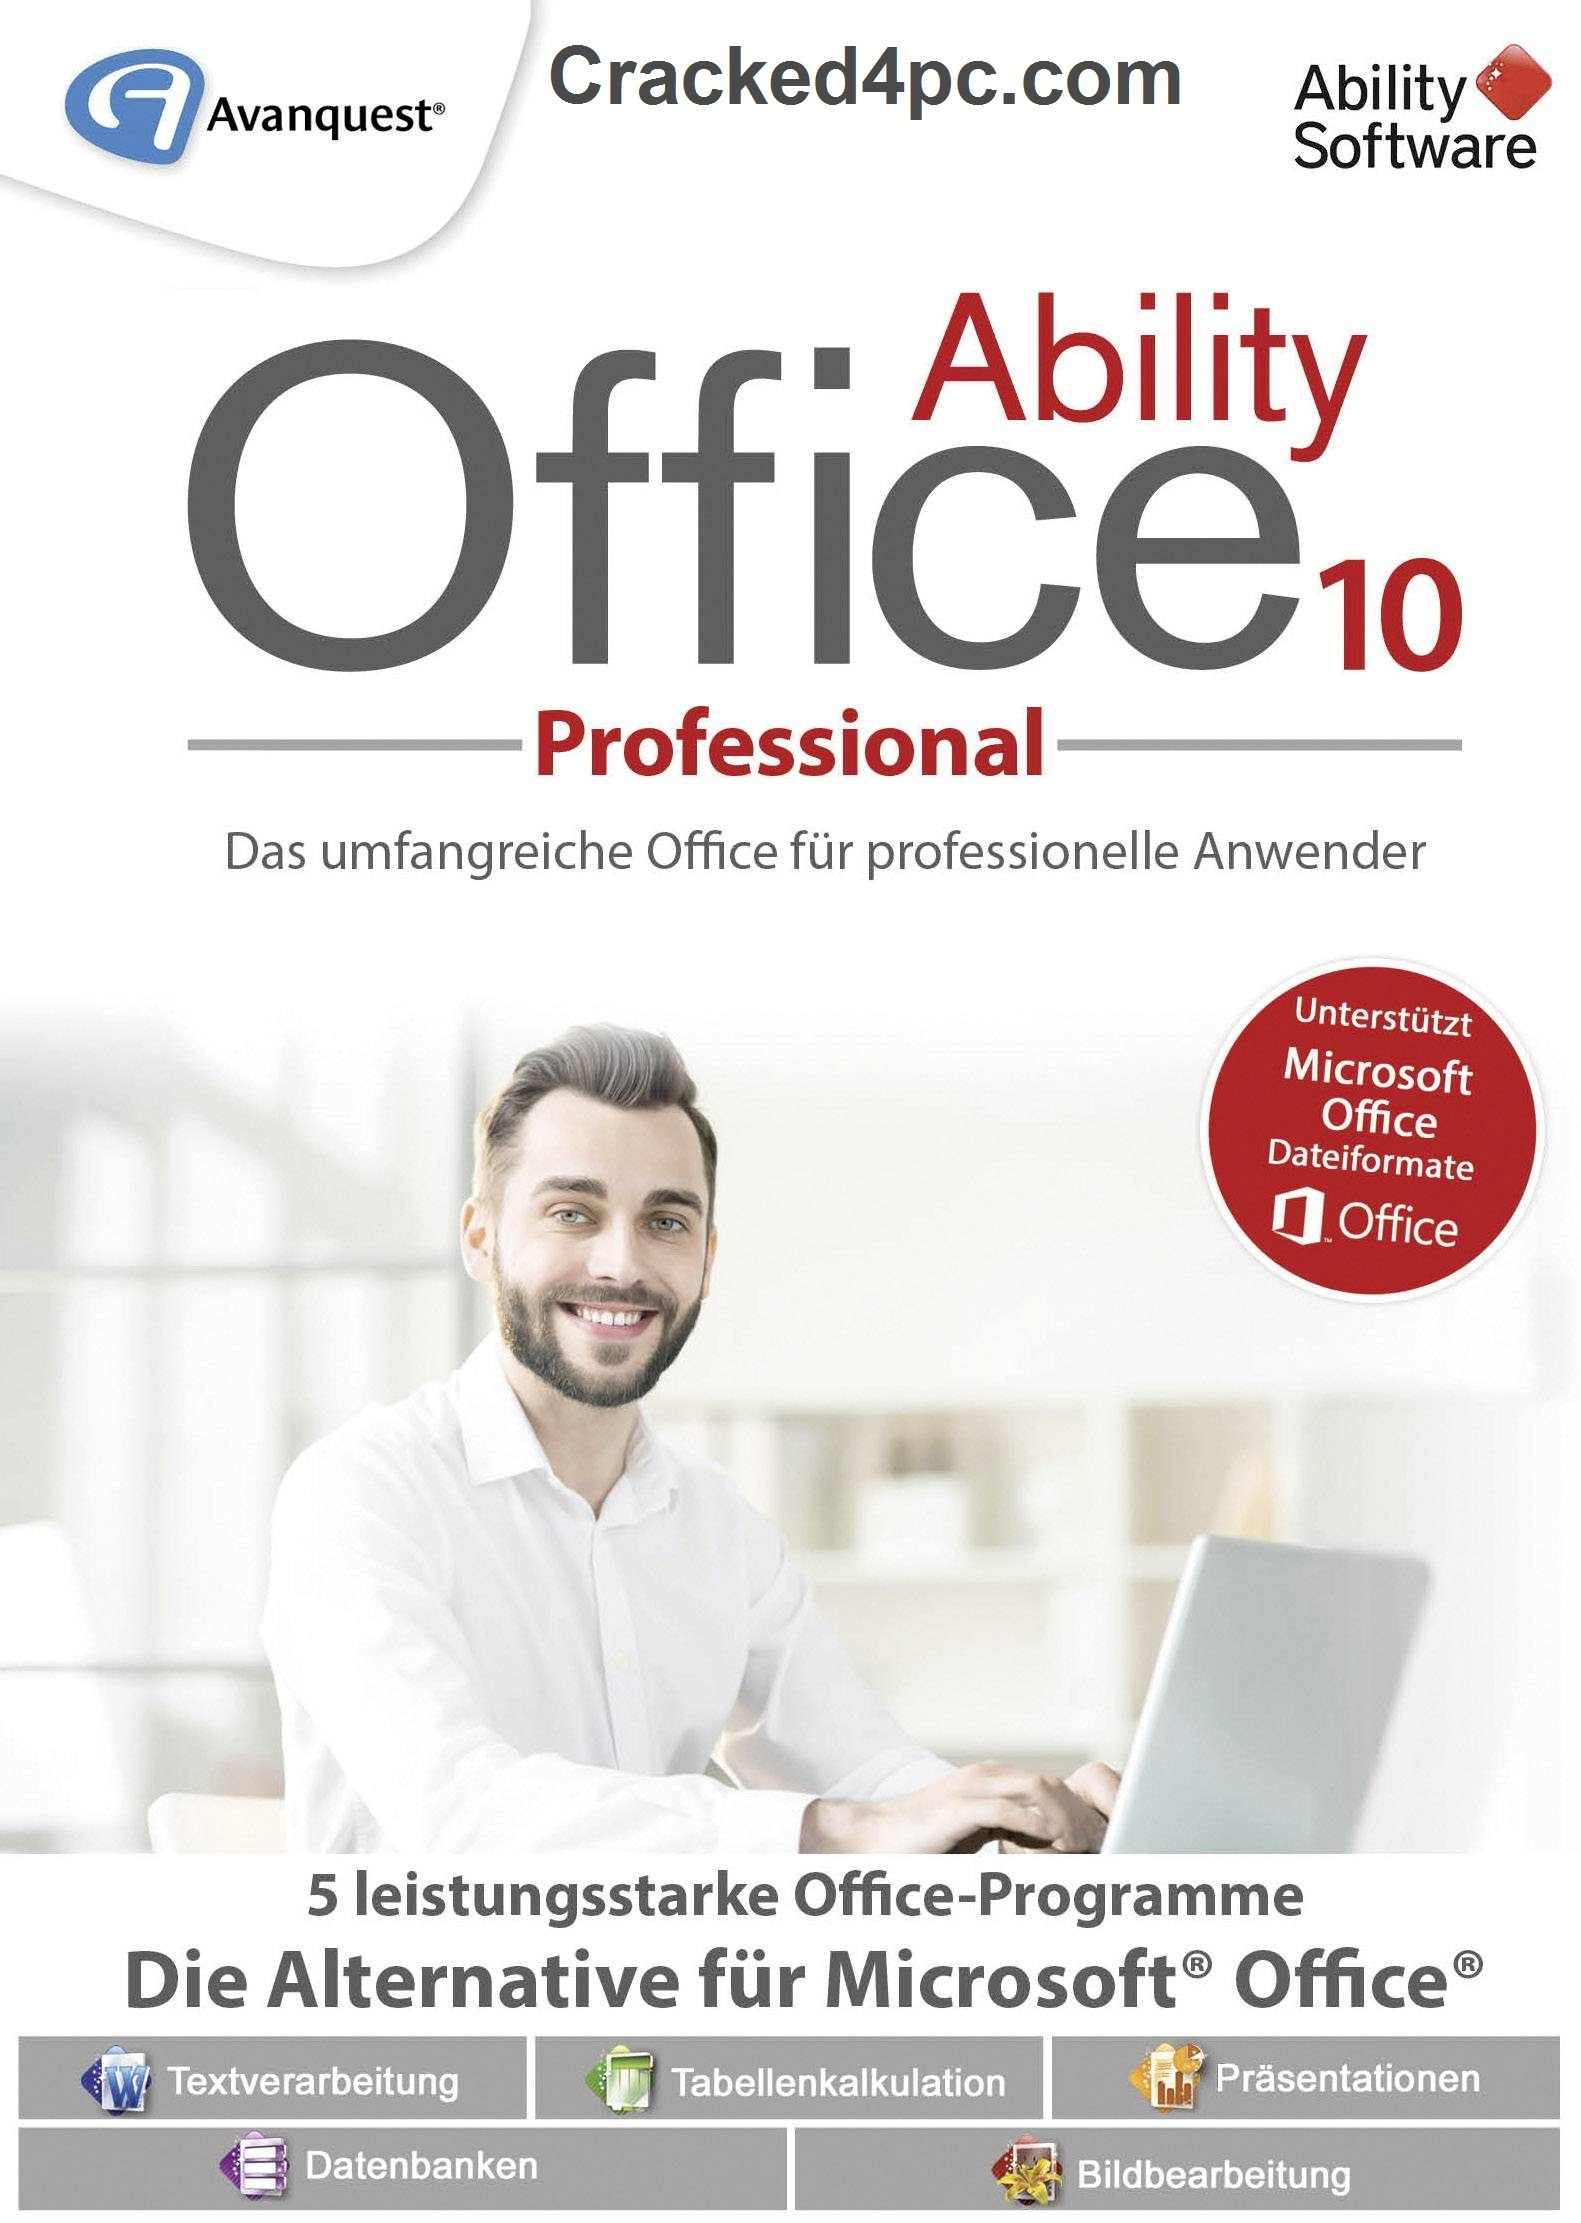 Ability Office Professional 10.0.3 Crack Pre-Patched Free Download